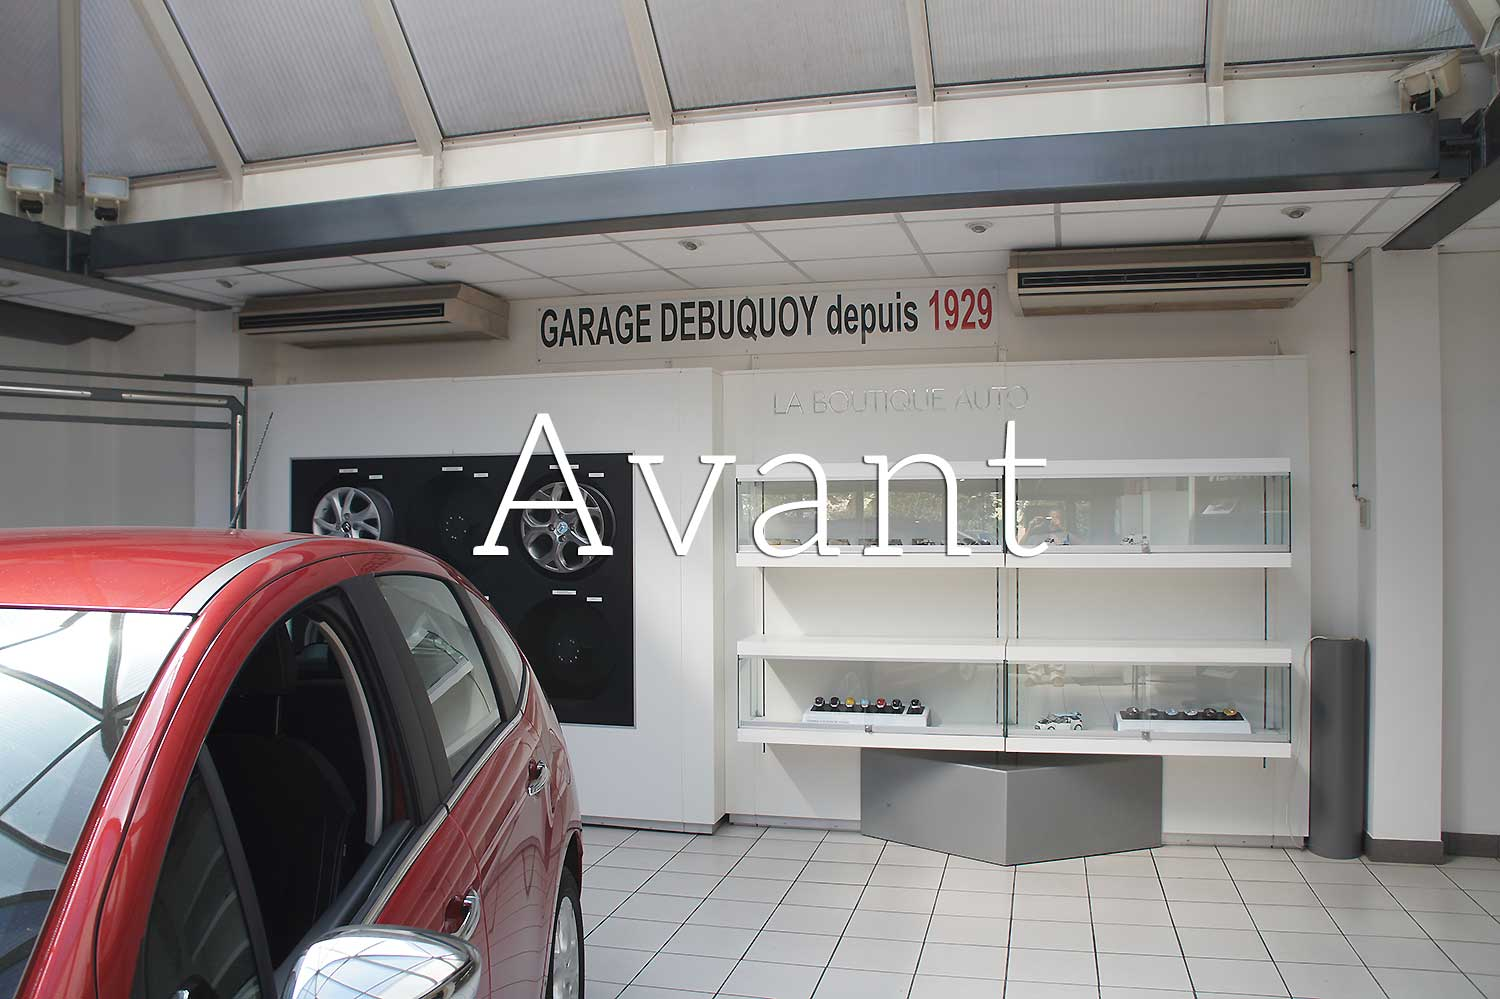 Garage citro n for Assurance voiture qui reste au garage